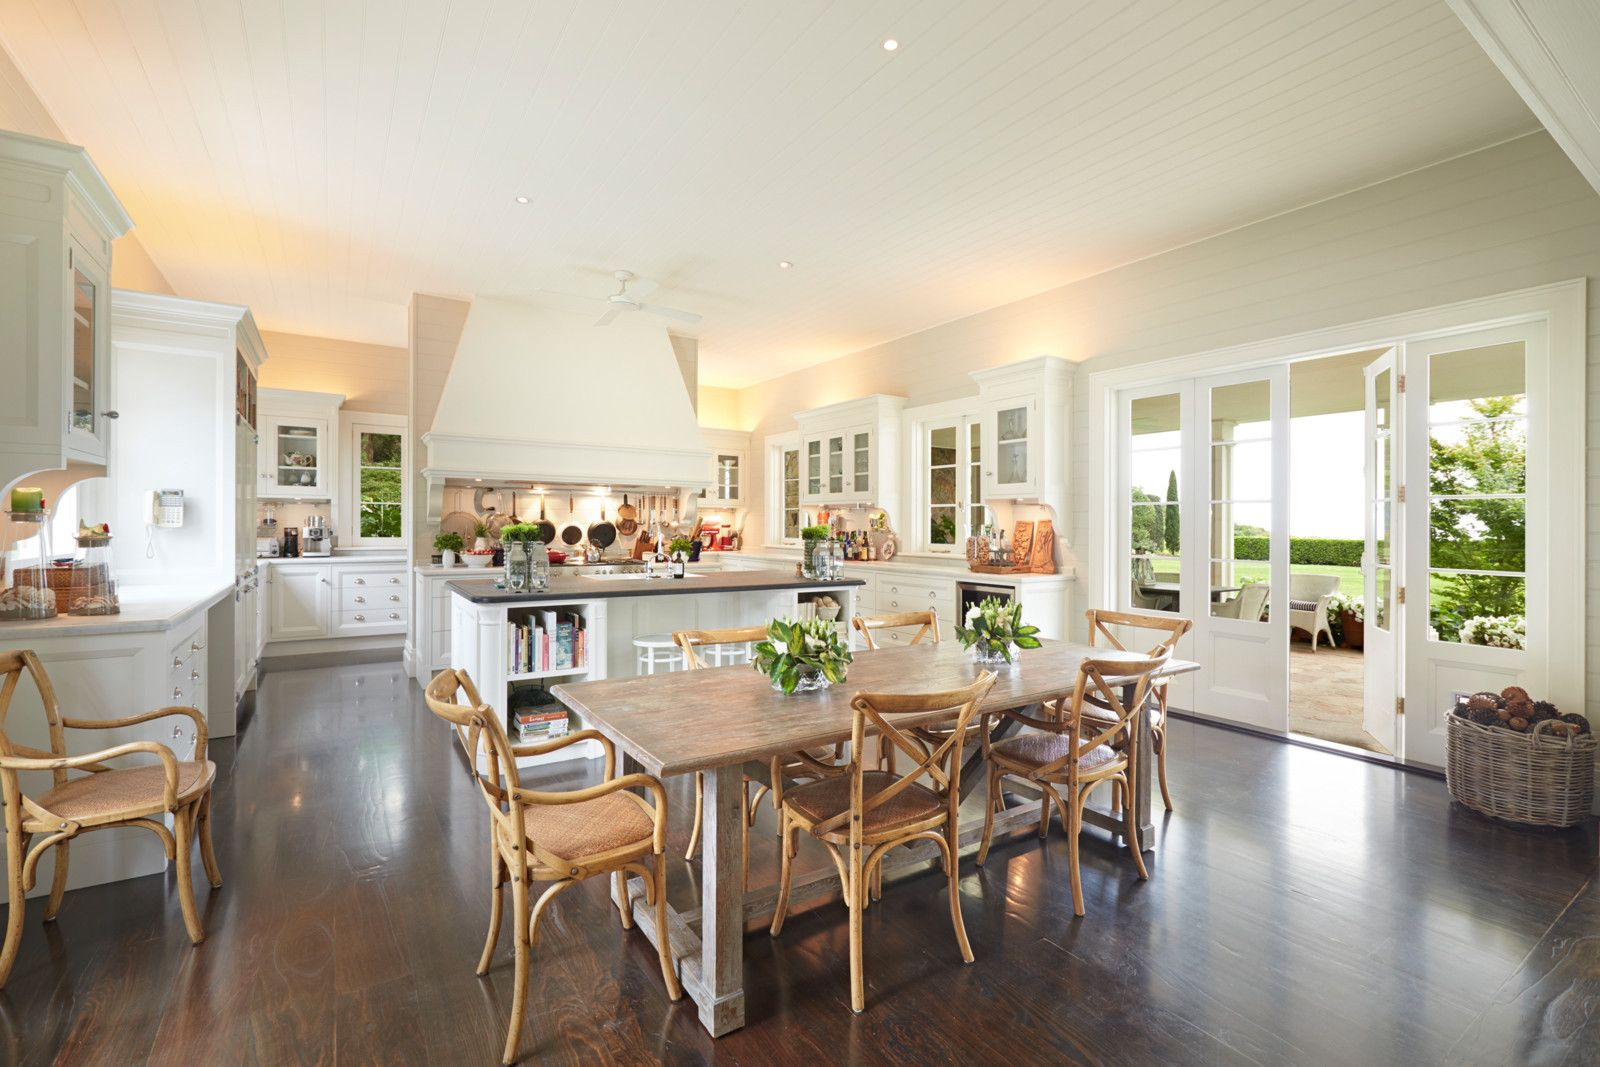 Modern Country Style Anne Turner S Cottage Living Kitchen: House Of The Day: A Hamptons-Style Home In Australia